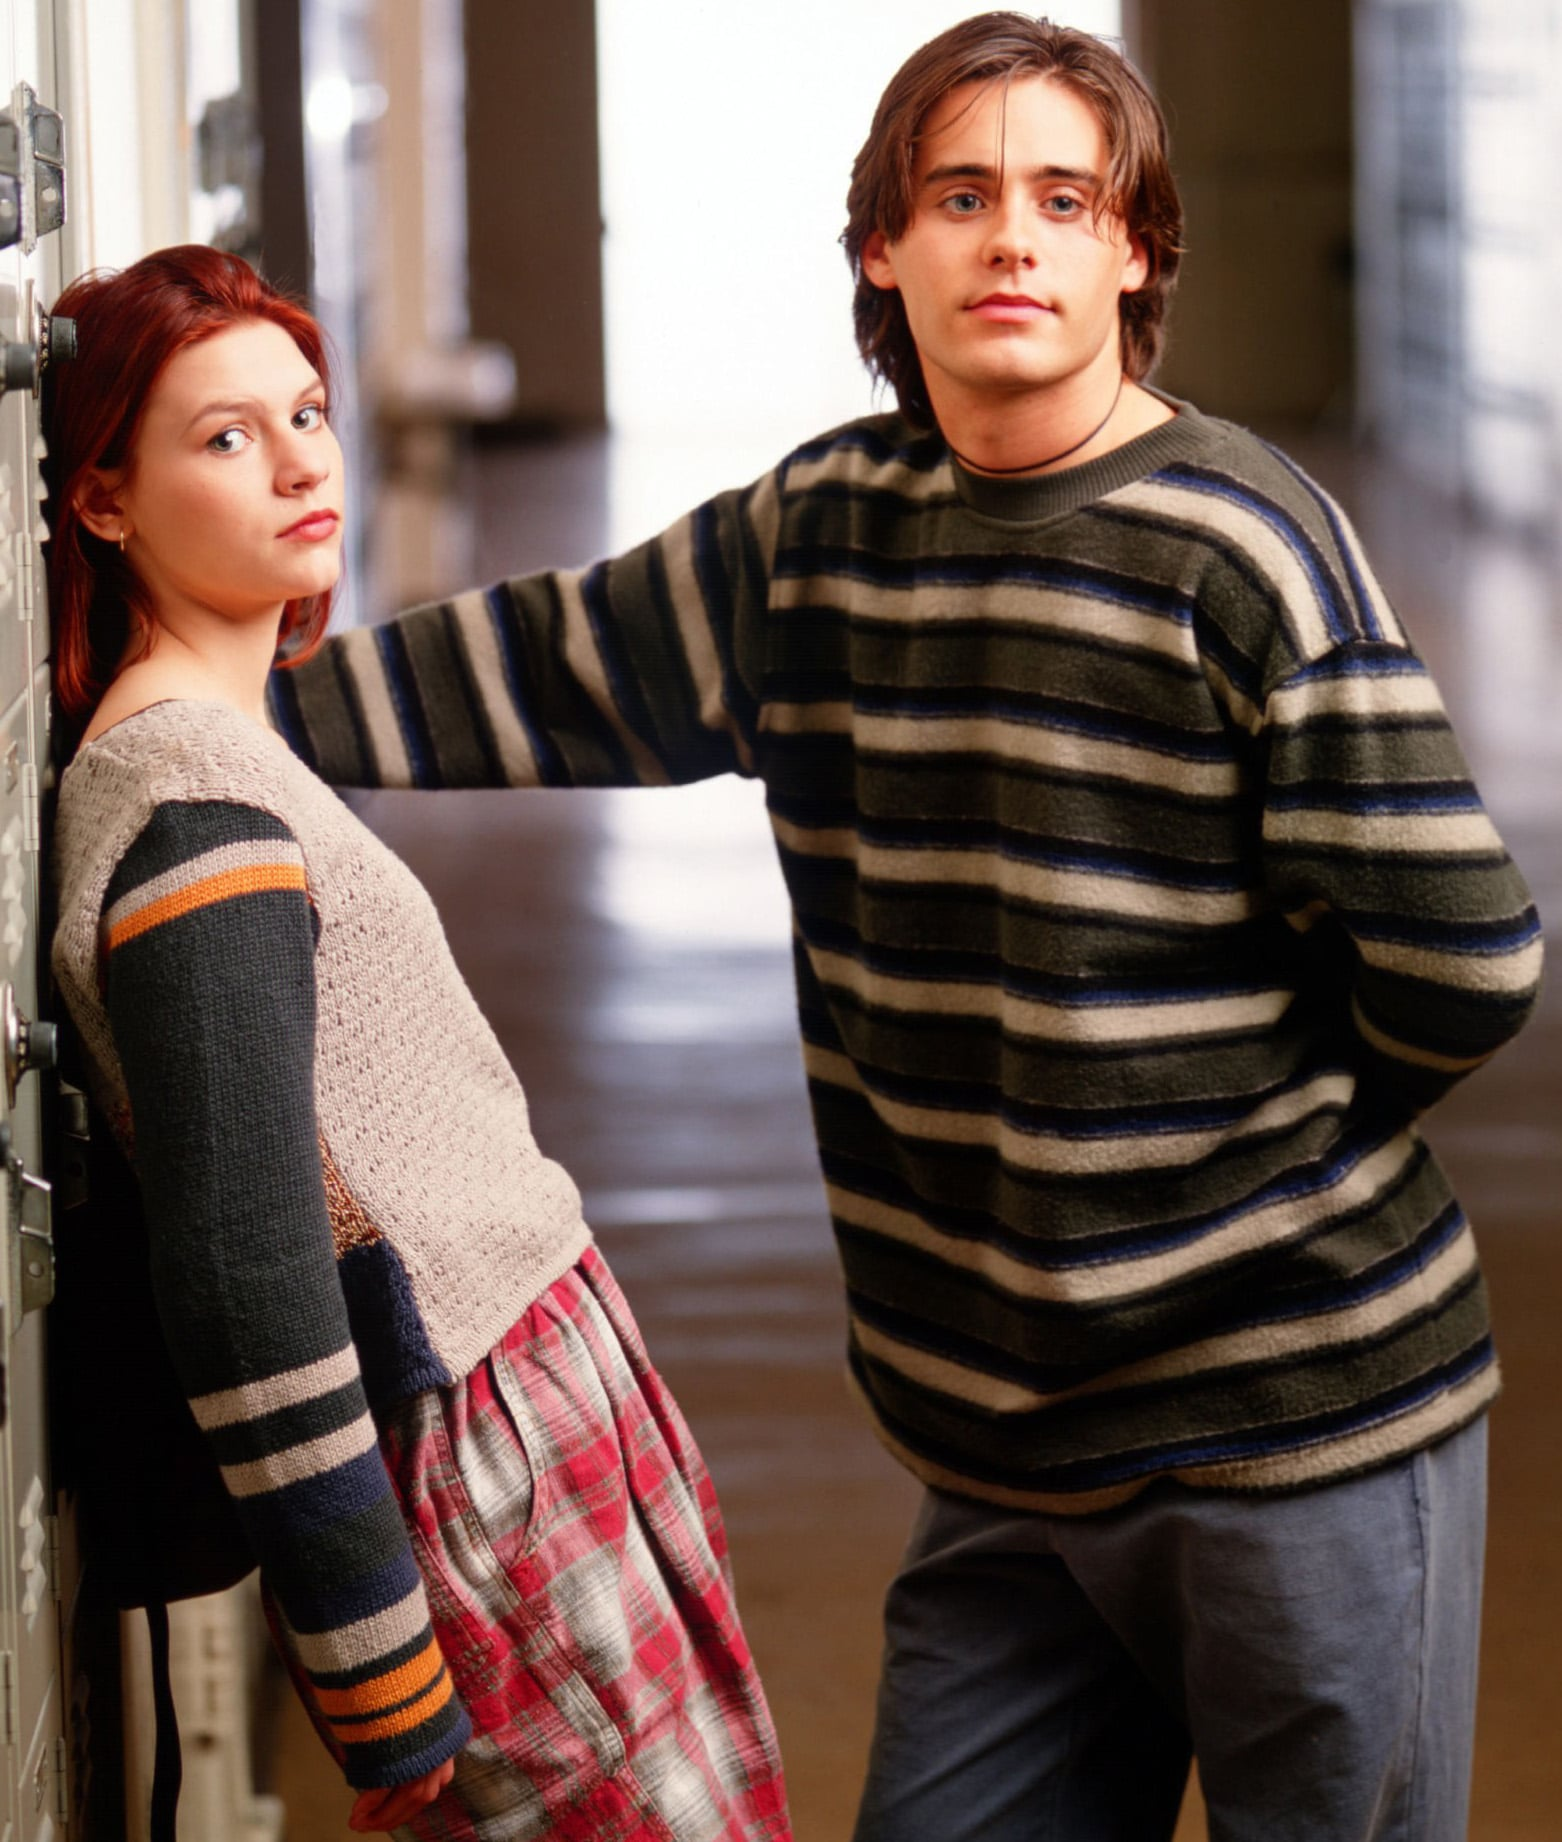 He Initally Got Our Attention as Jordan Catalano